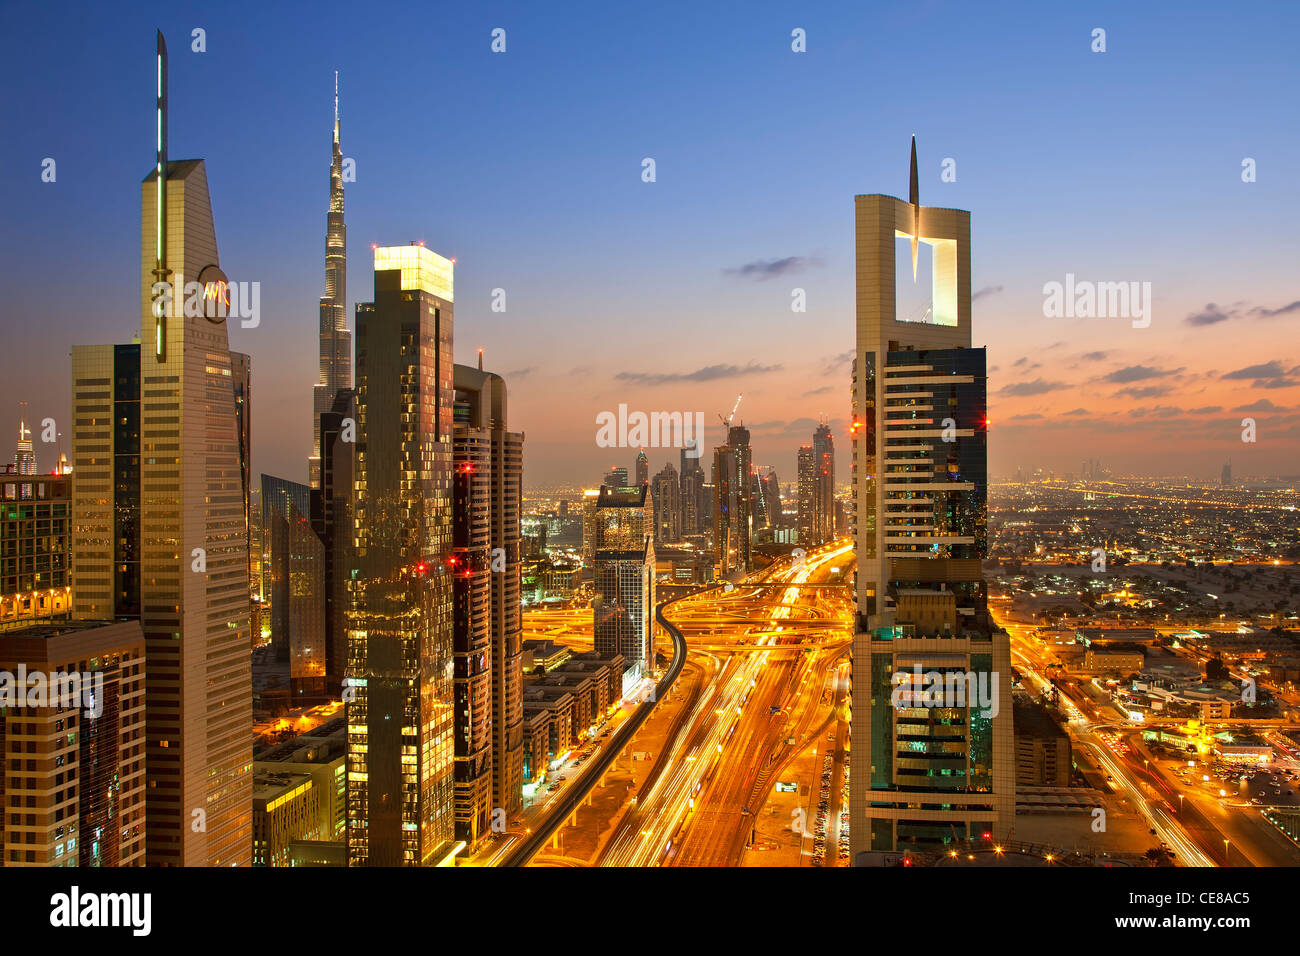 Dubai, Towering office and apartment towers along Sheikh Zayed Road Stock Photo